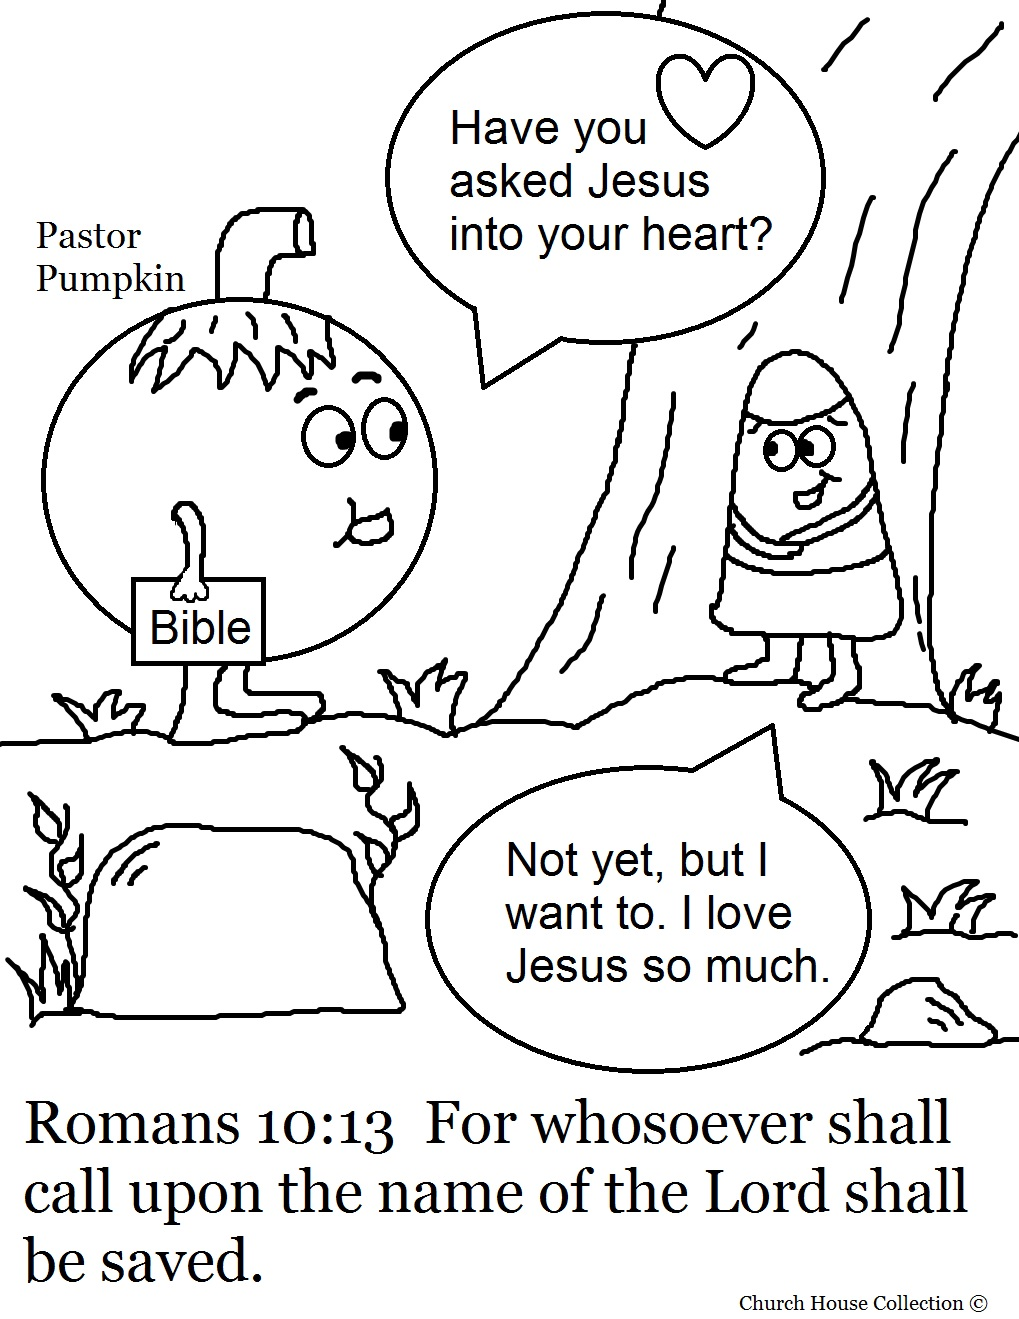 Coloring Pages Index Children's Sermons for Sermon 4 Kids - bible coloring pages for toddlers